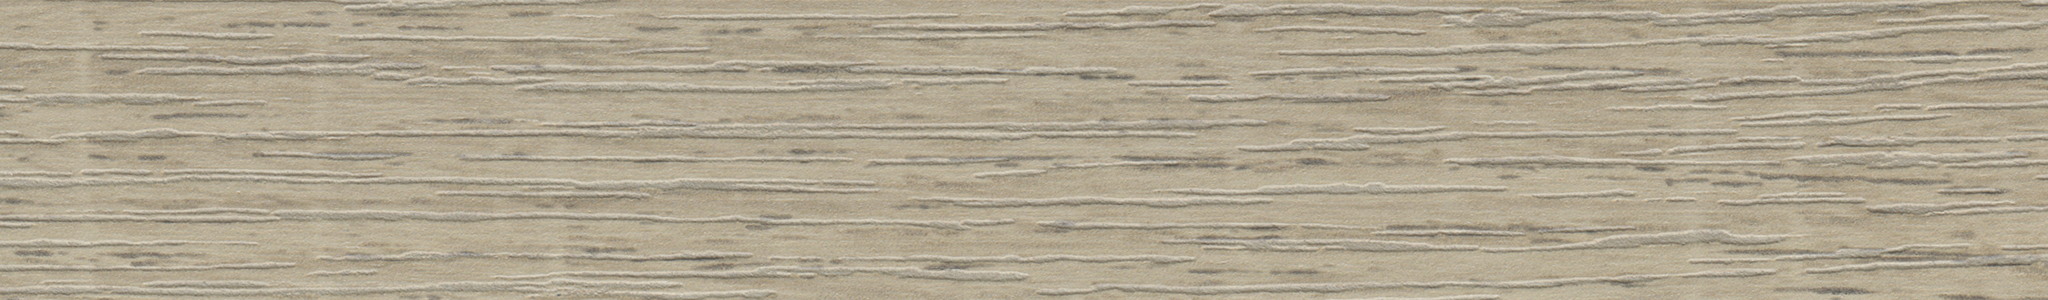 HD 24356 ABS Edge Sand Oak Pore